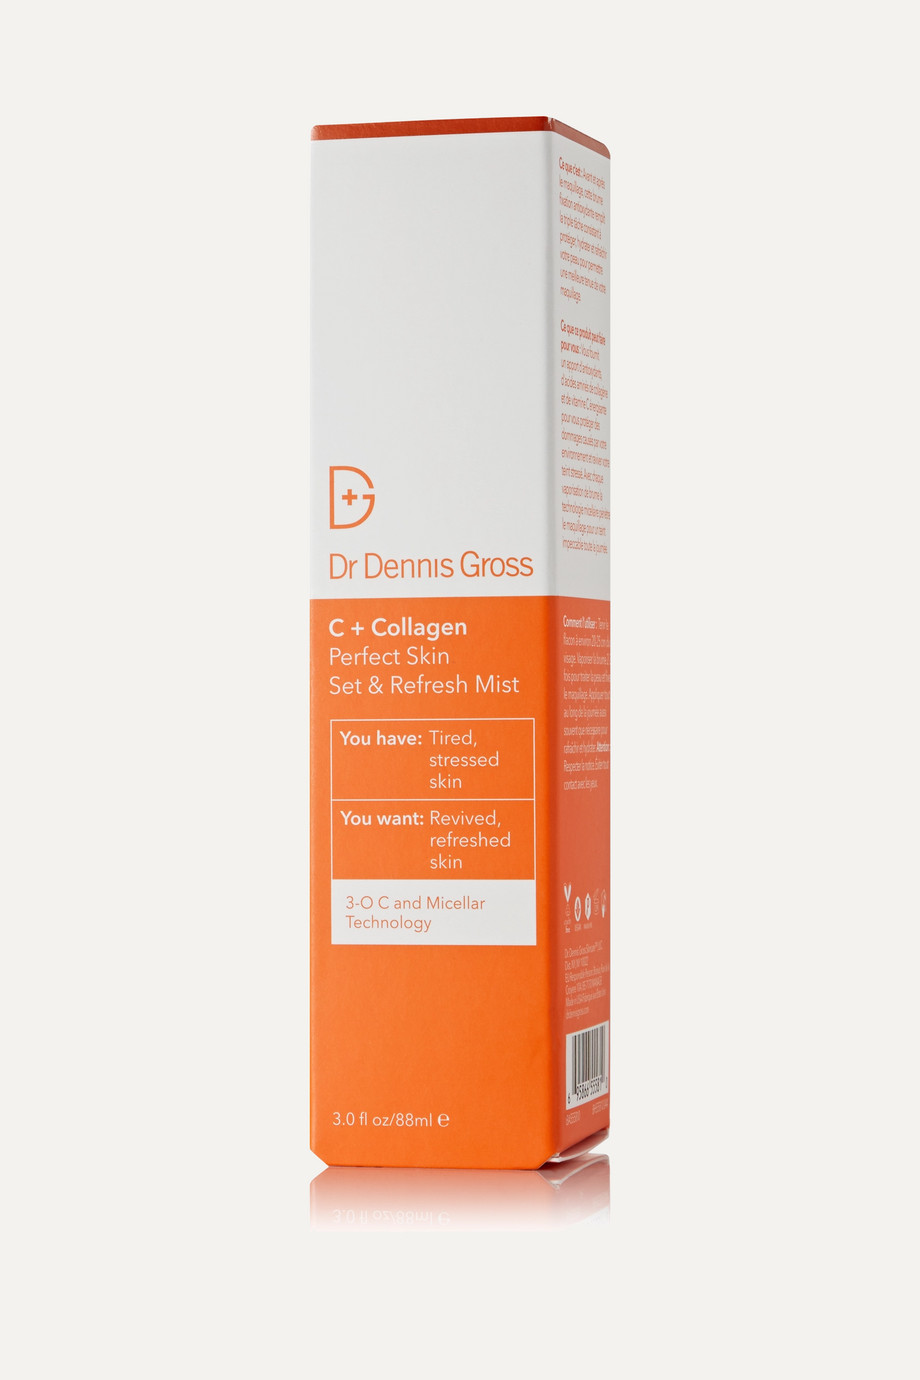 Dr. Dennis Gross Skincare C + Collagen Perfect Skin Set & Refresh Mist, 88ml